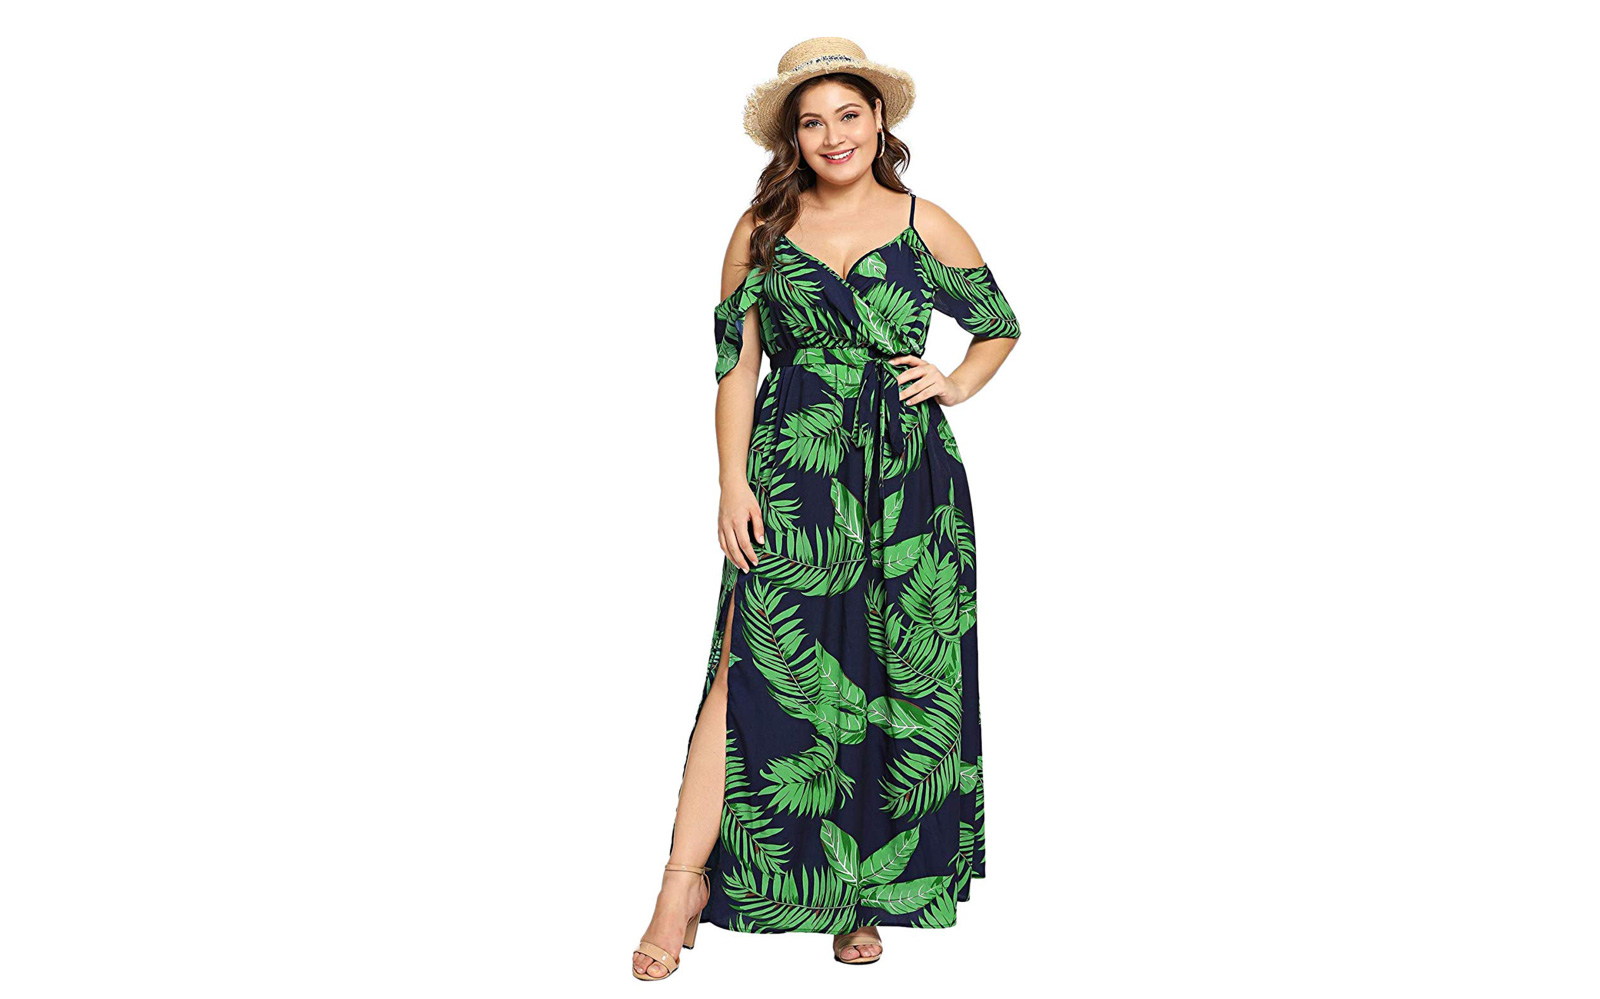 cb0538e68d3 15 Breezy Maxi Dresses You'll Be Wearing On Repeat This Summer ...